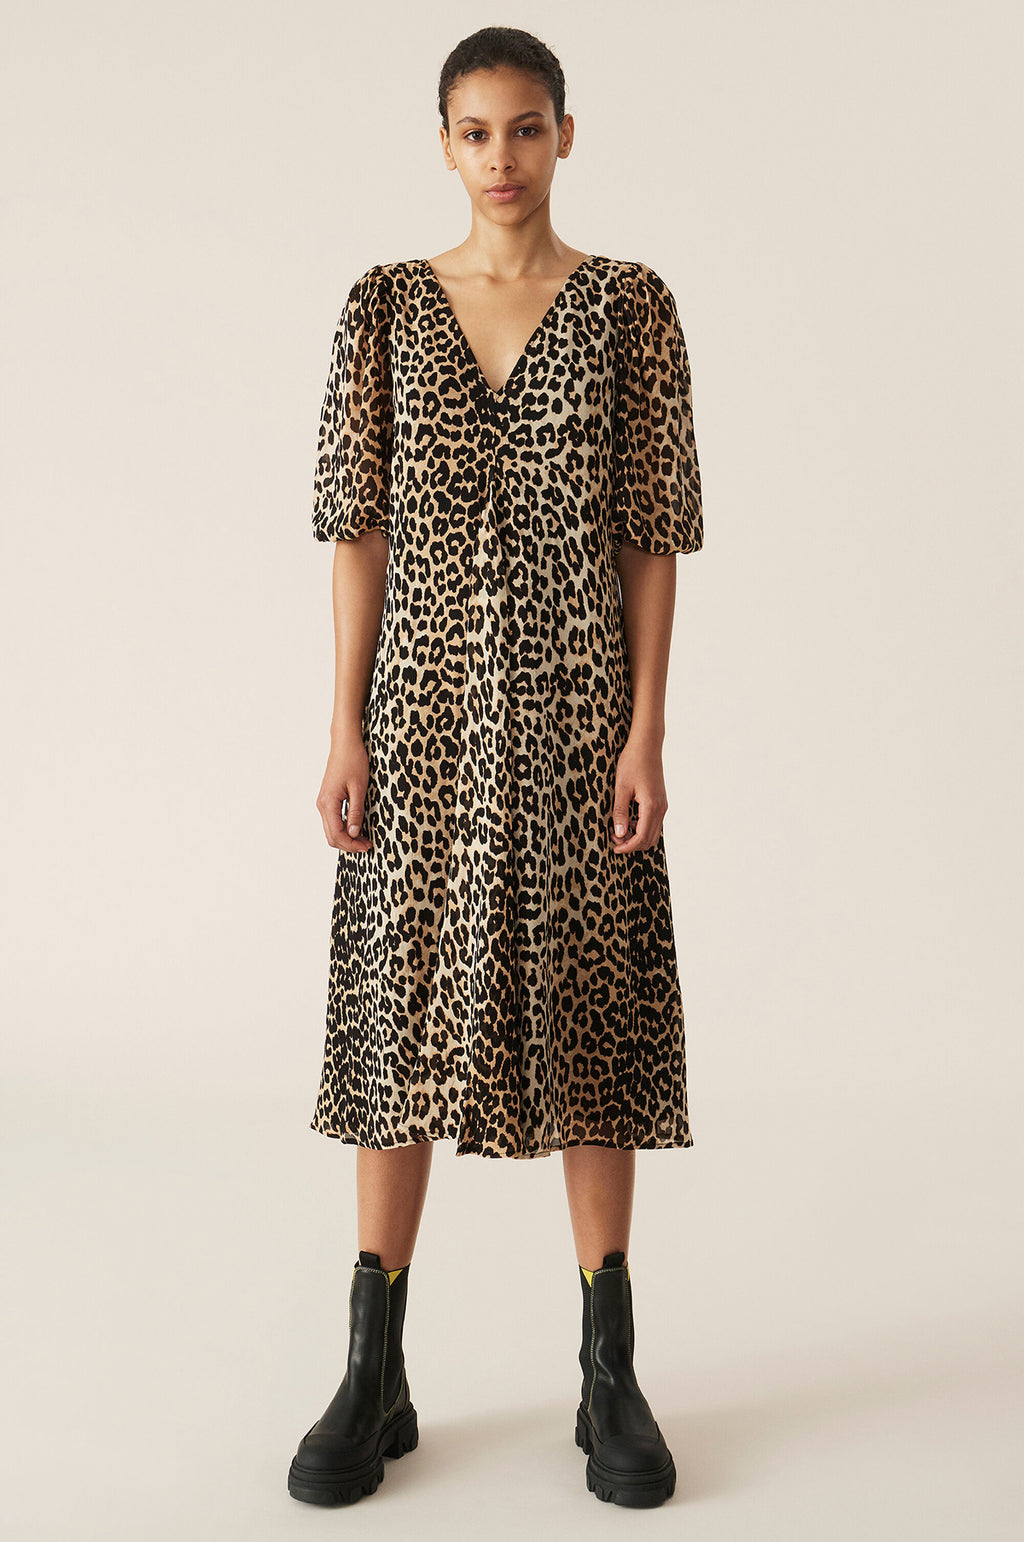 Puff Sleeve Dress in Leopard